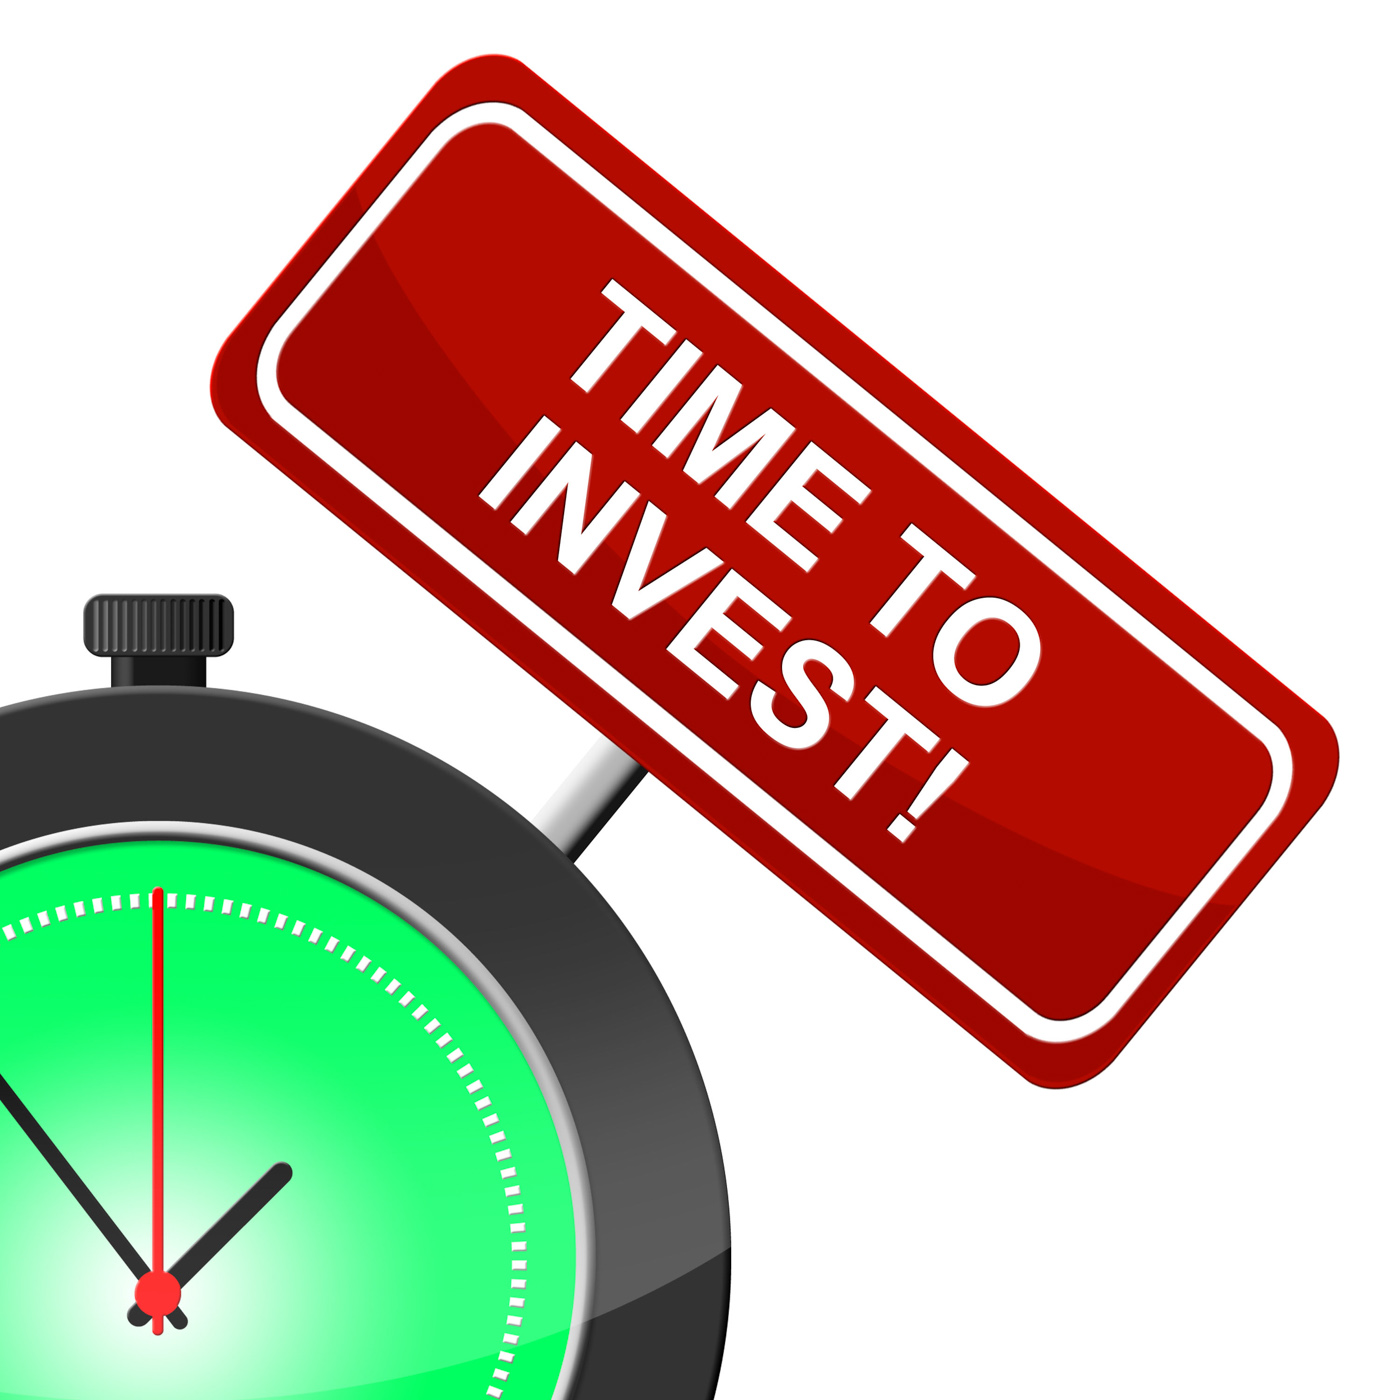 Time to invest indicates savings return and shares photo